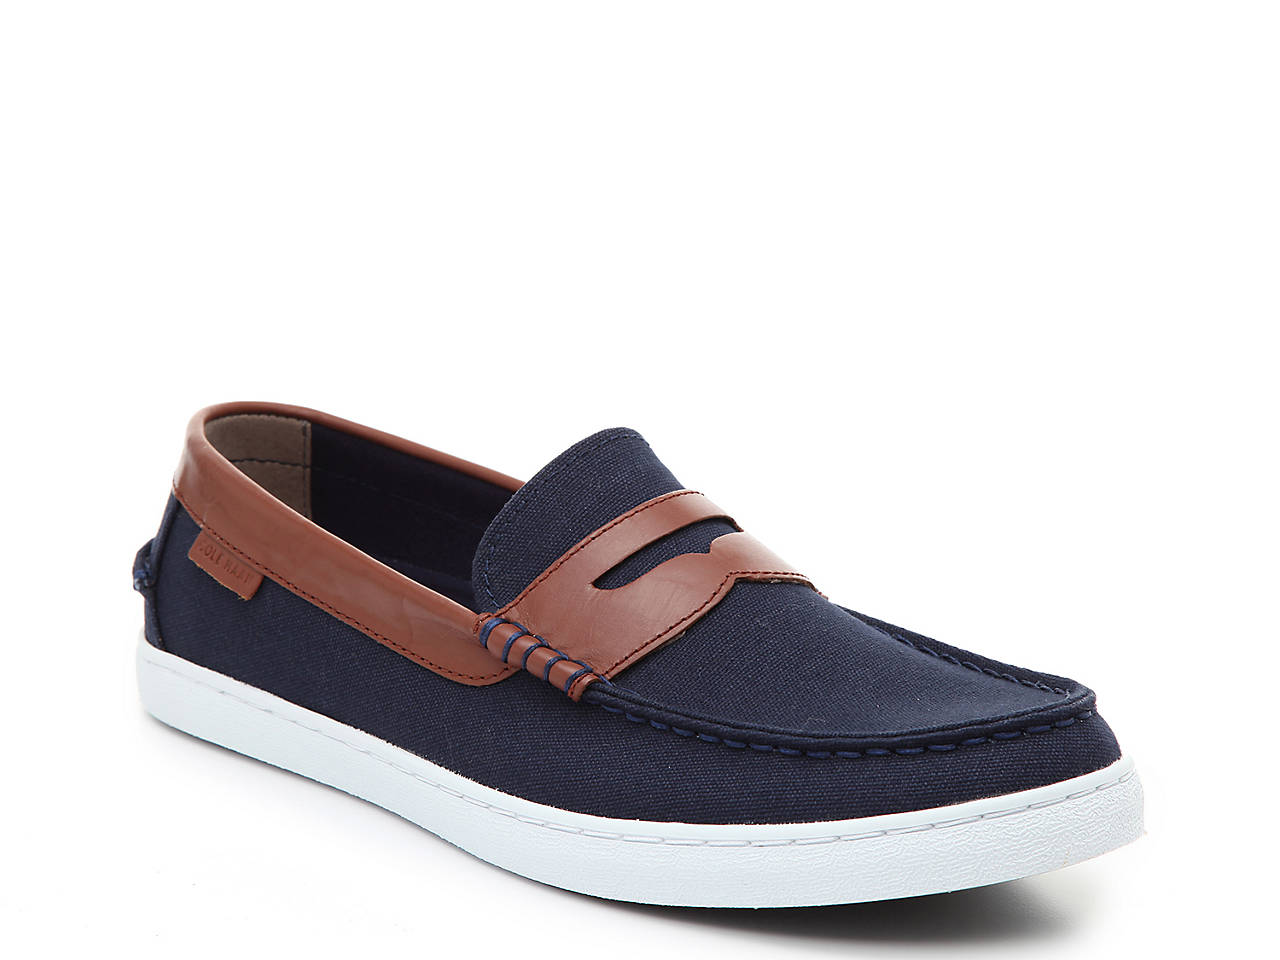 12d32edf0c5 Nantucket Penny Loafer by Cole Haan